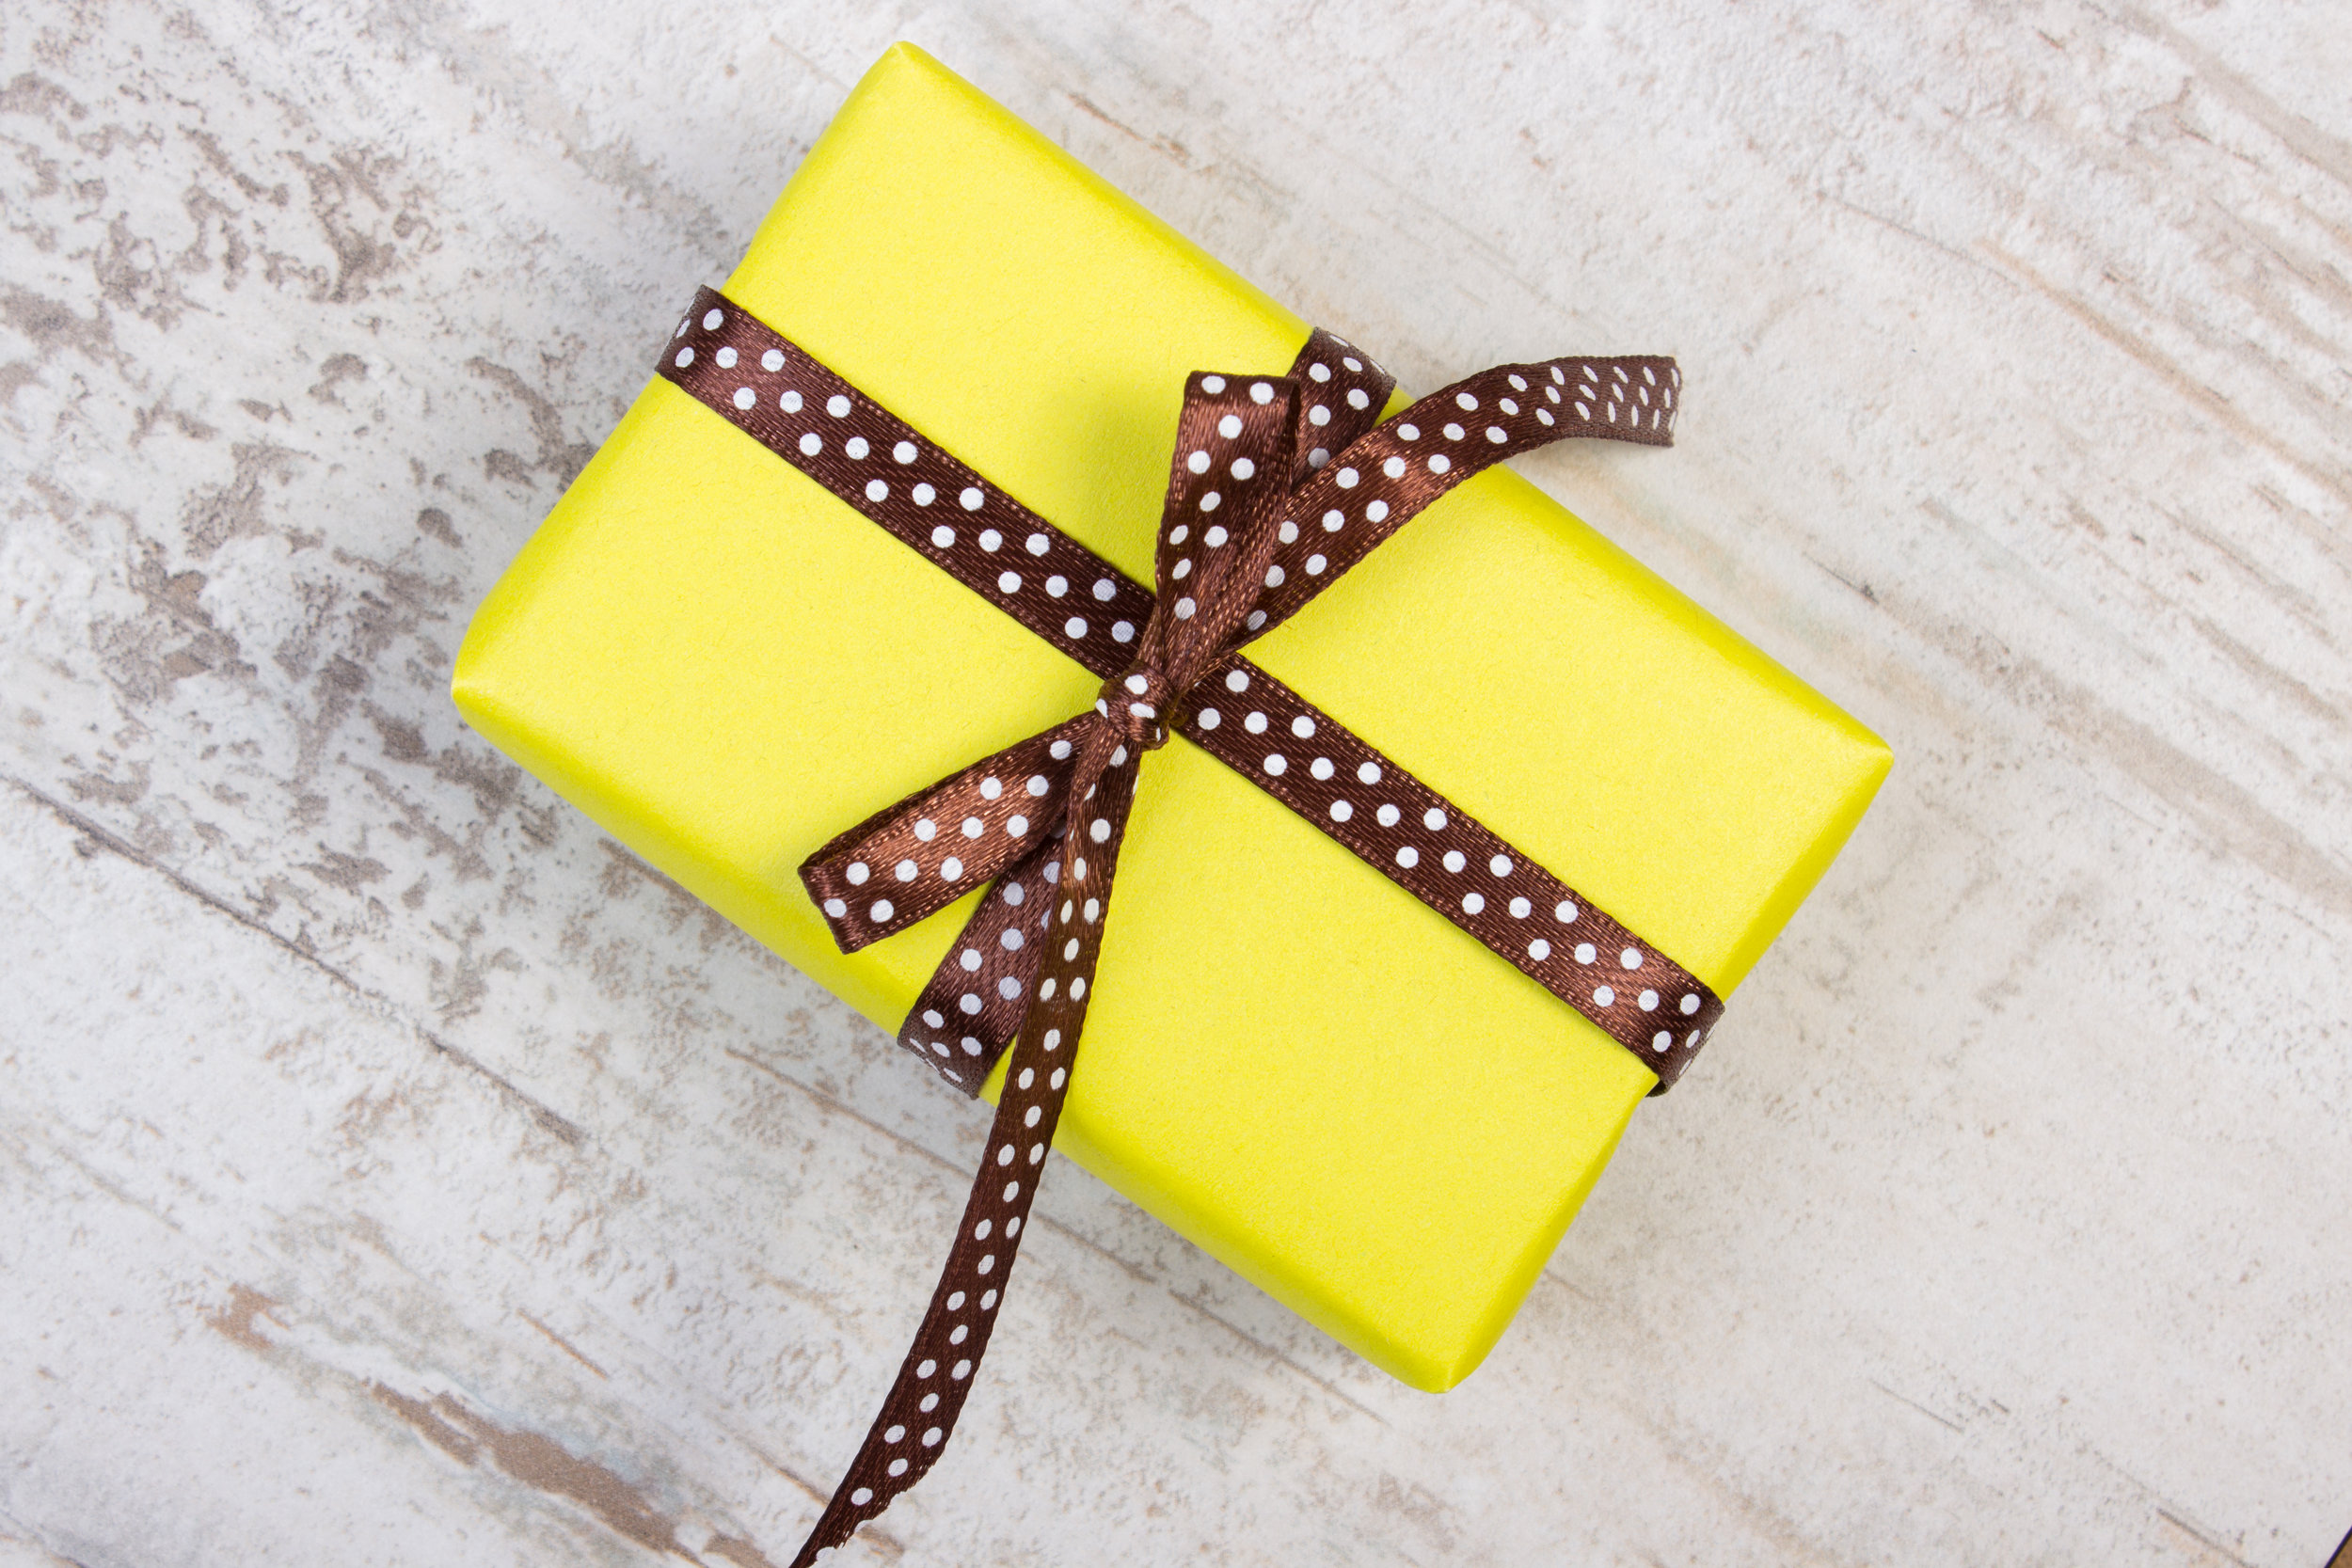 yellow-gift-for-christmas-birthday-or-other-PLVTK57.jpg